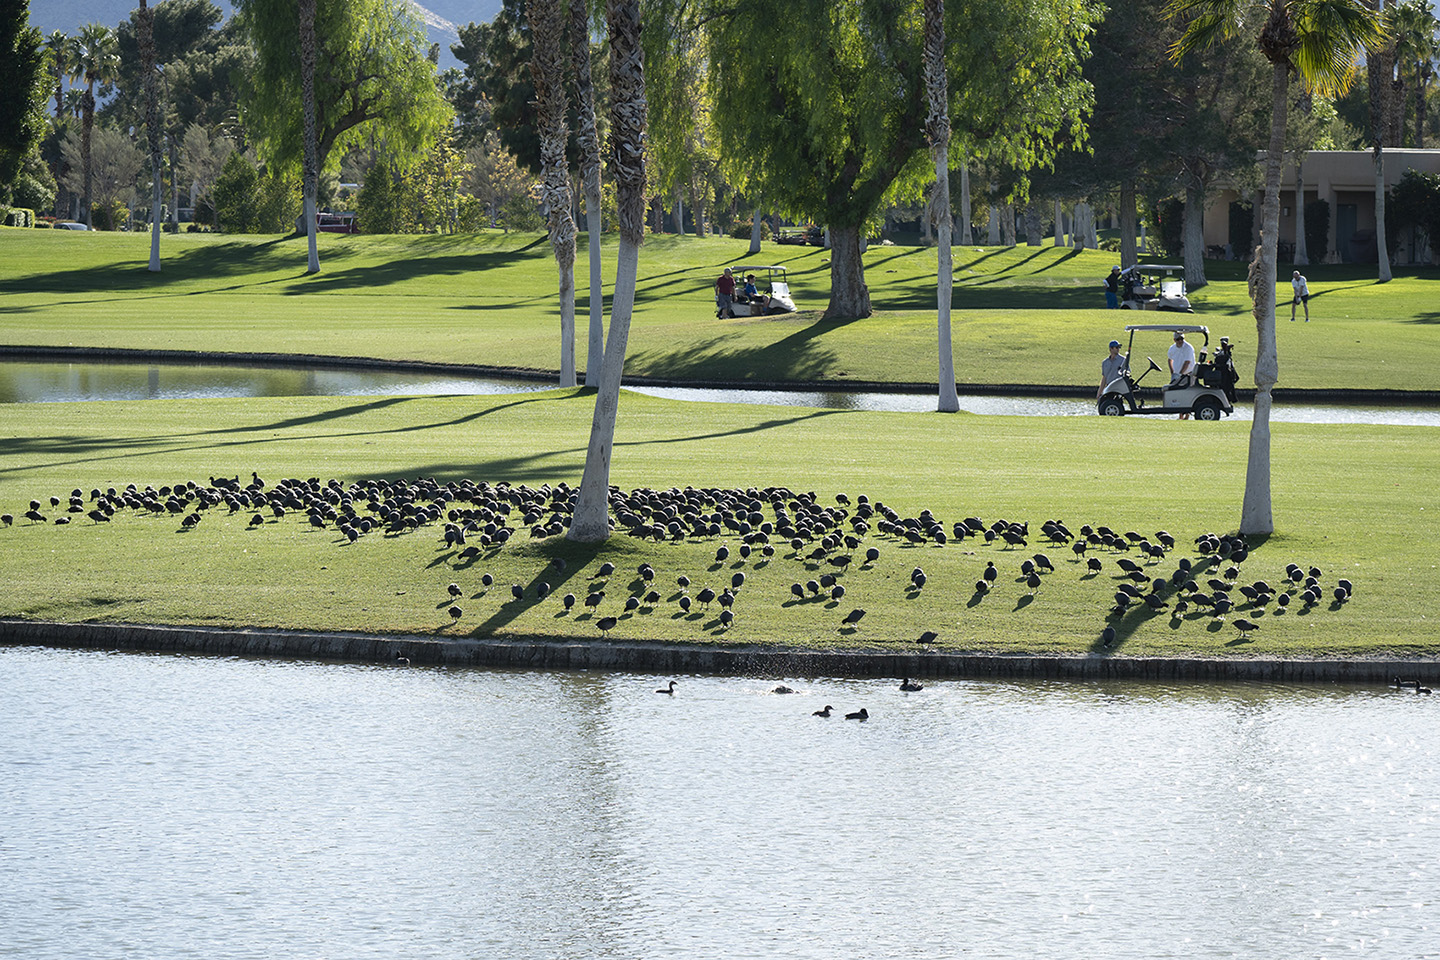 coots and golfers by Shac in Regular Member Gallery